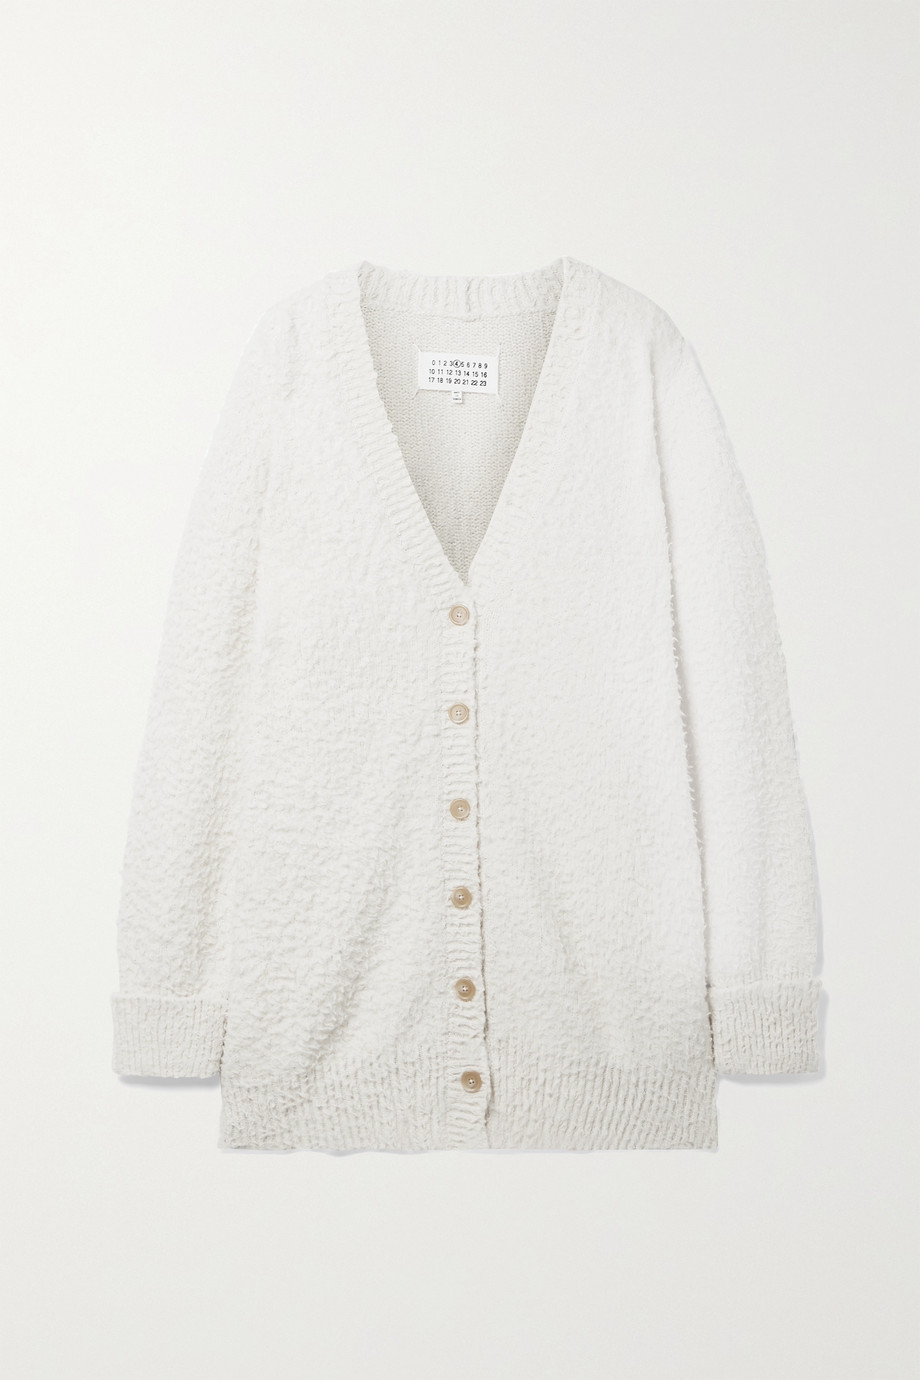 MAISON MARGIELA Oversized cotton-blend bouclé cardigan